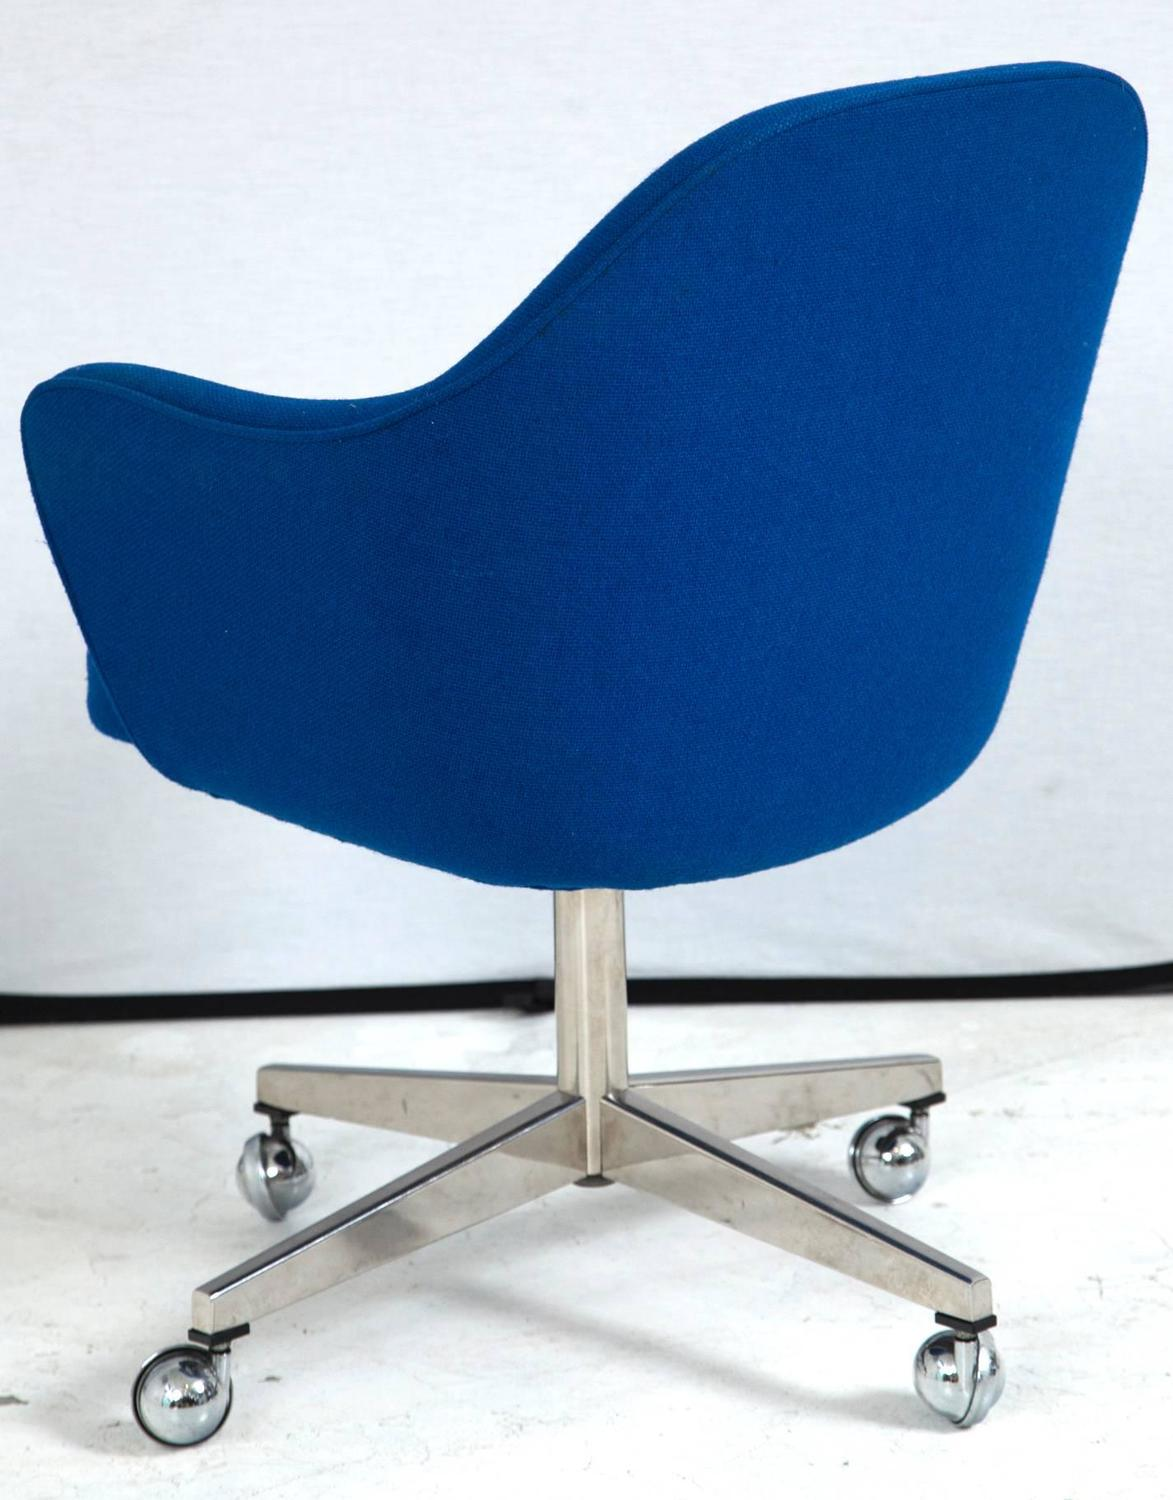 Knoll desk chair in vintage knoll blue at 1stdibs - Knoll life chair parts ...